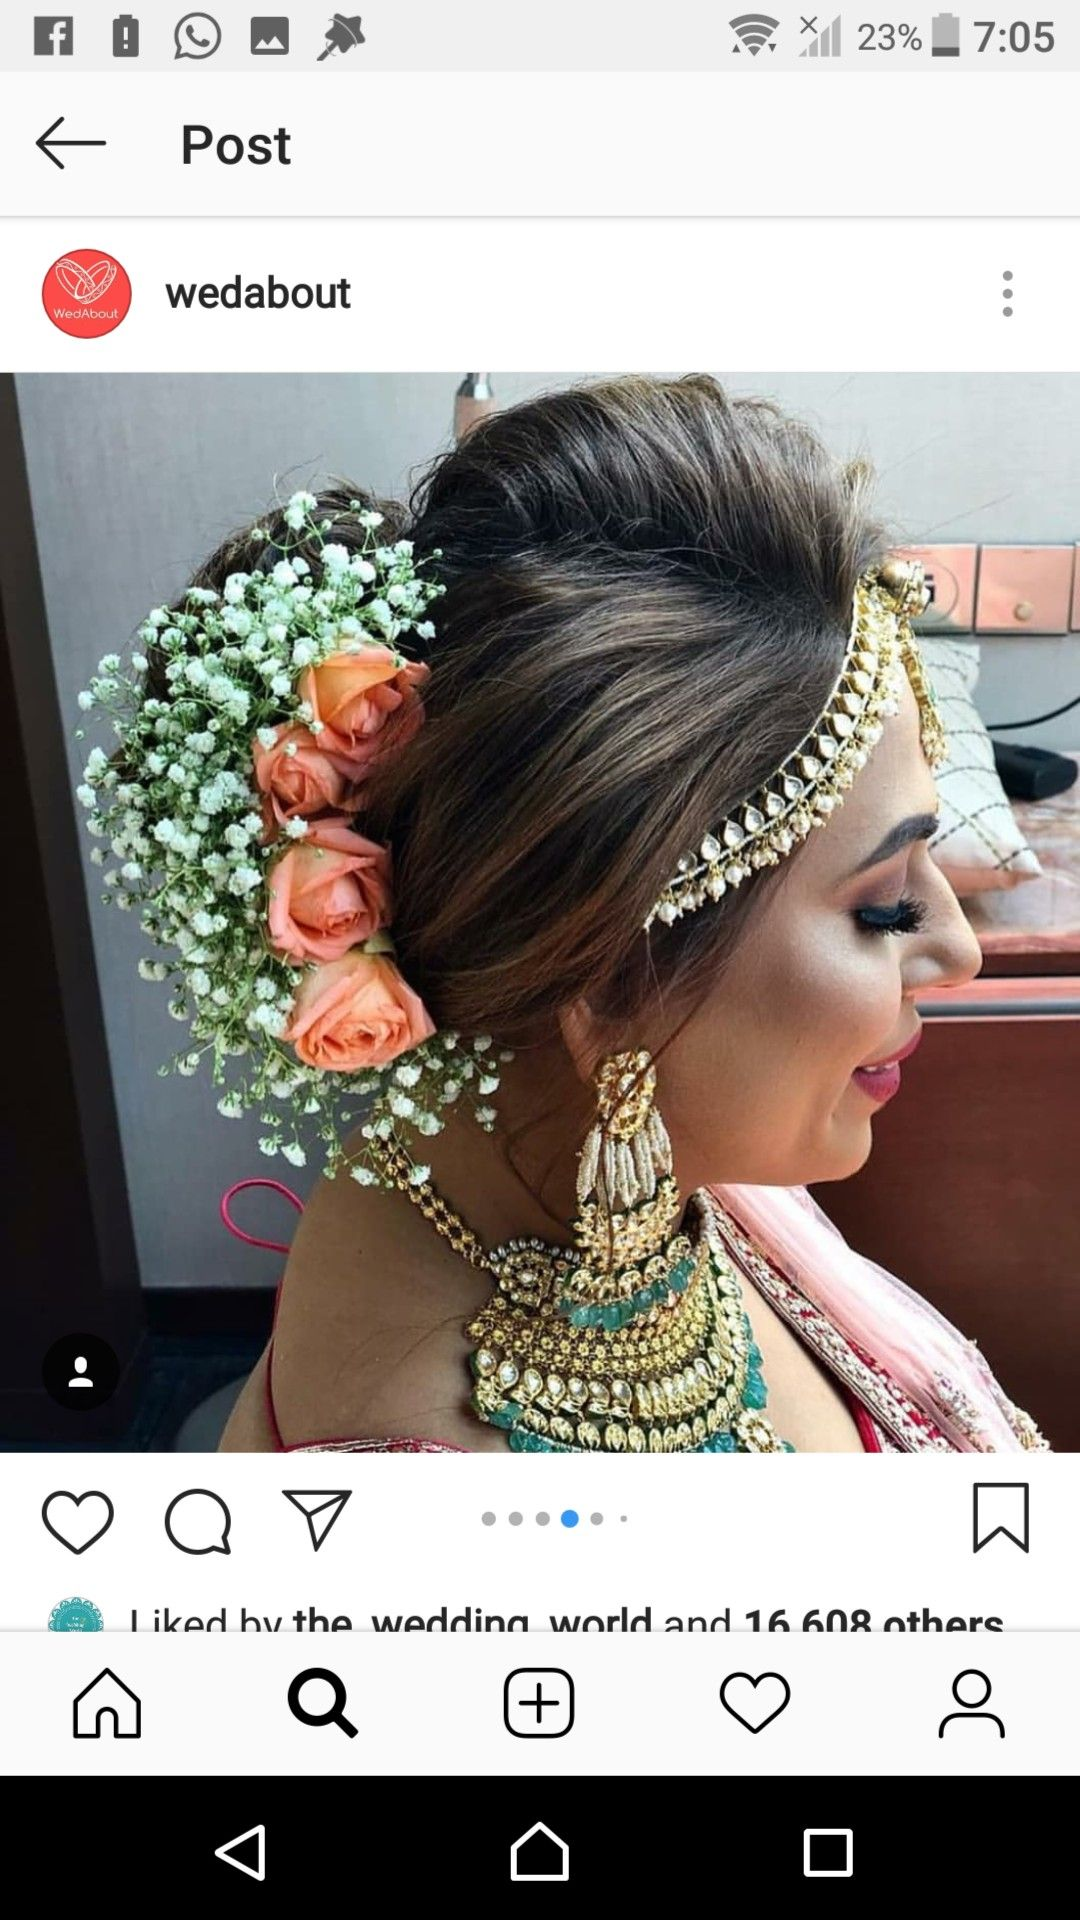 pin by thava bell on leadership in 2019 | bridal hairdo